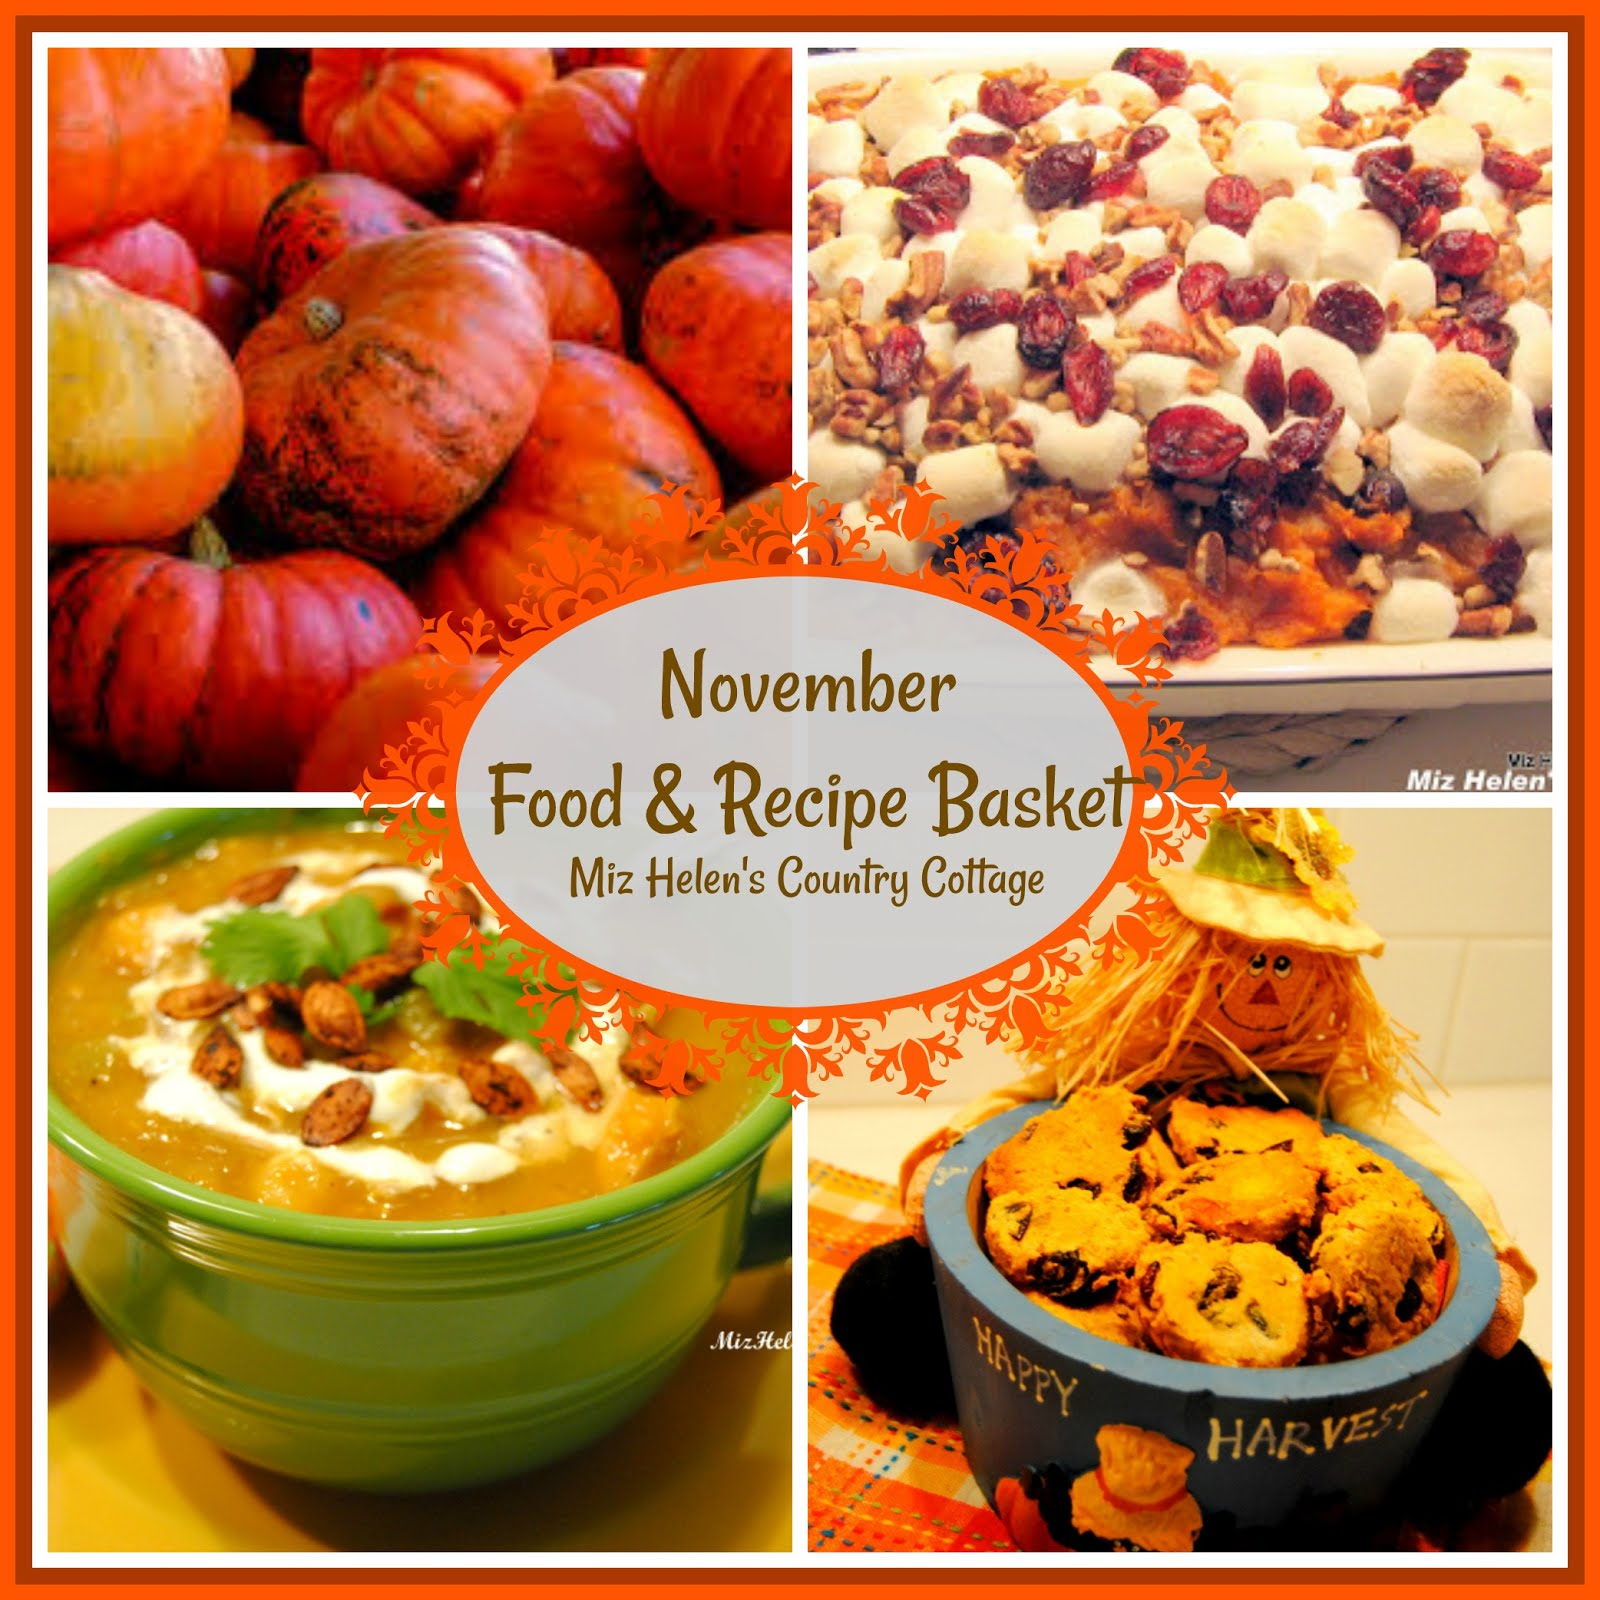 November Food & Recipe Basket